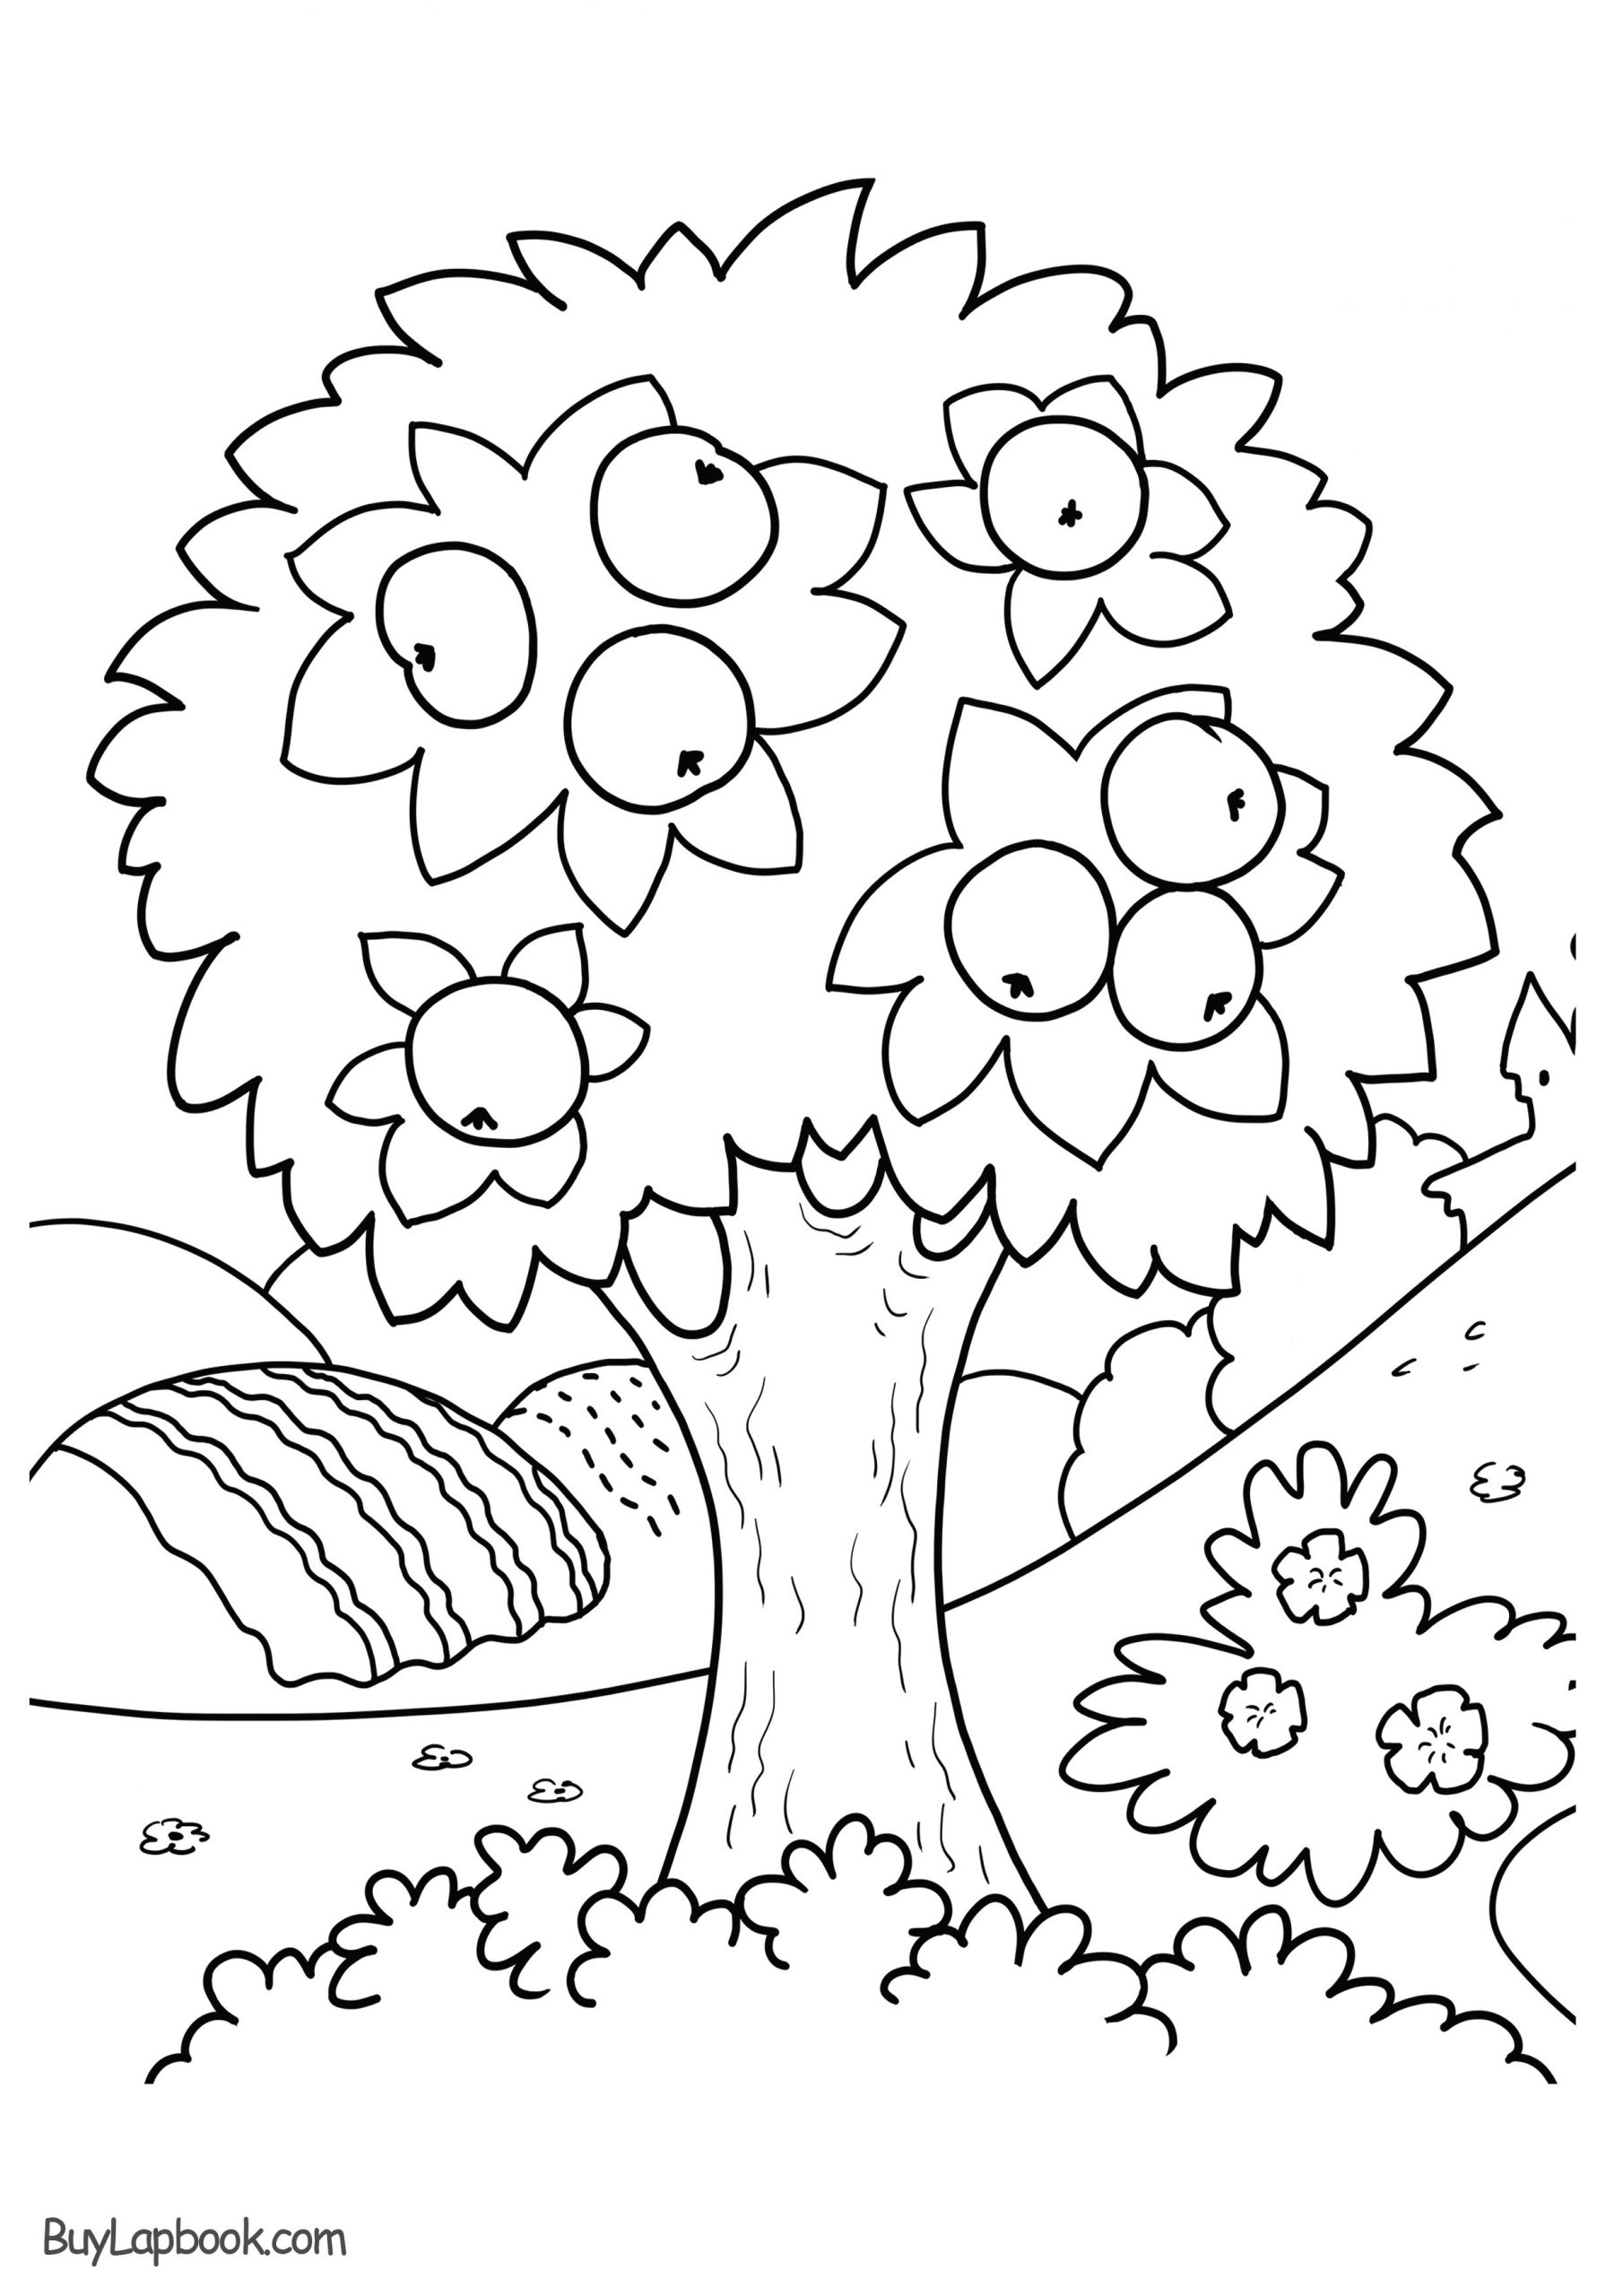 Free Printable Apple Worksheets Apple Tree Coloring Page Free Printable – Buylapbook